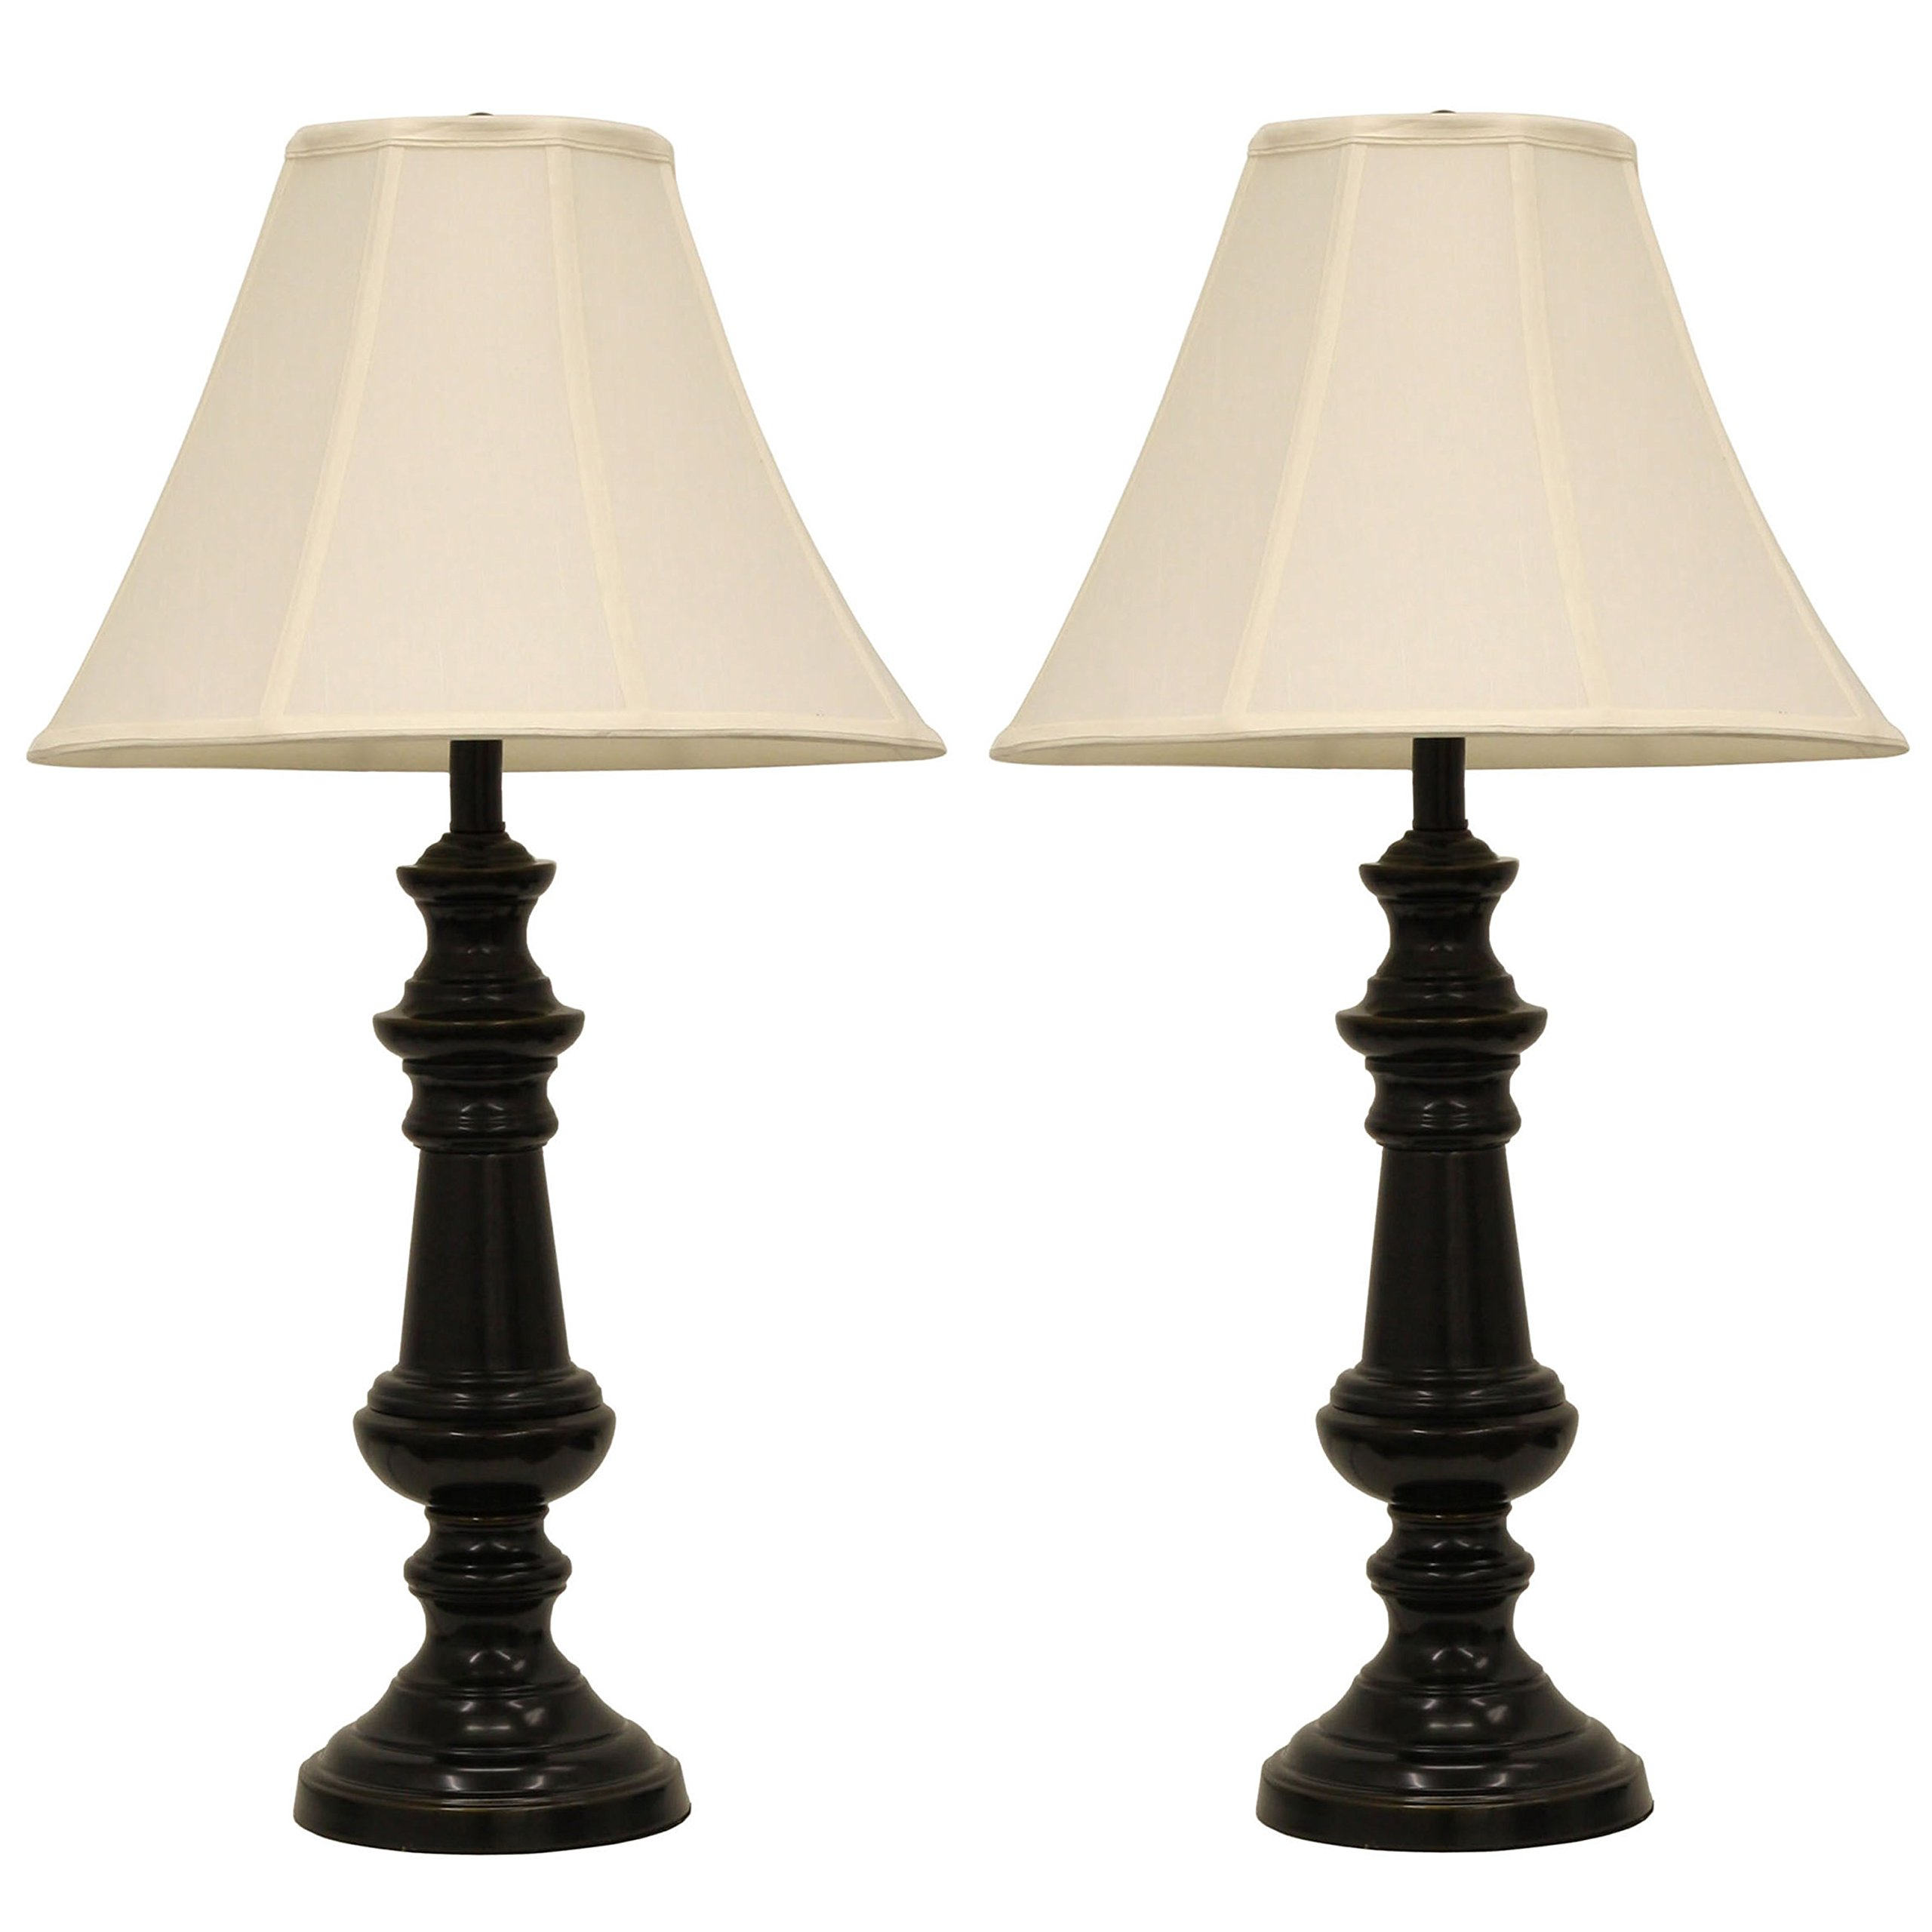 Décor Therapy MP1991 Pair of Touch Control Bronze Table Lampsbronze